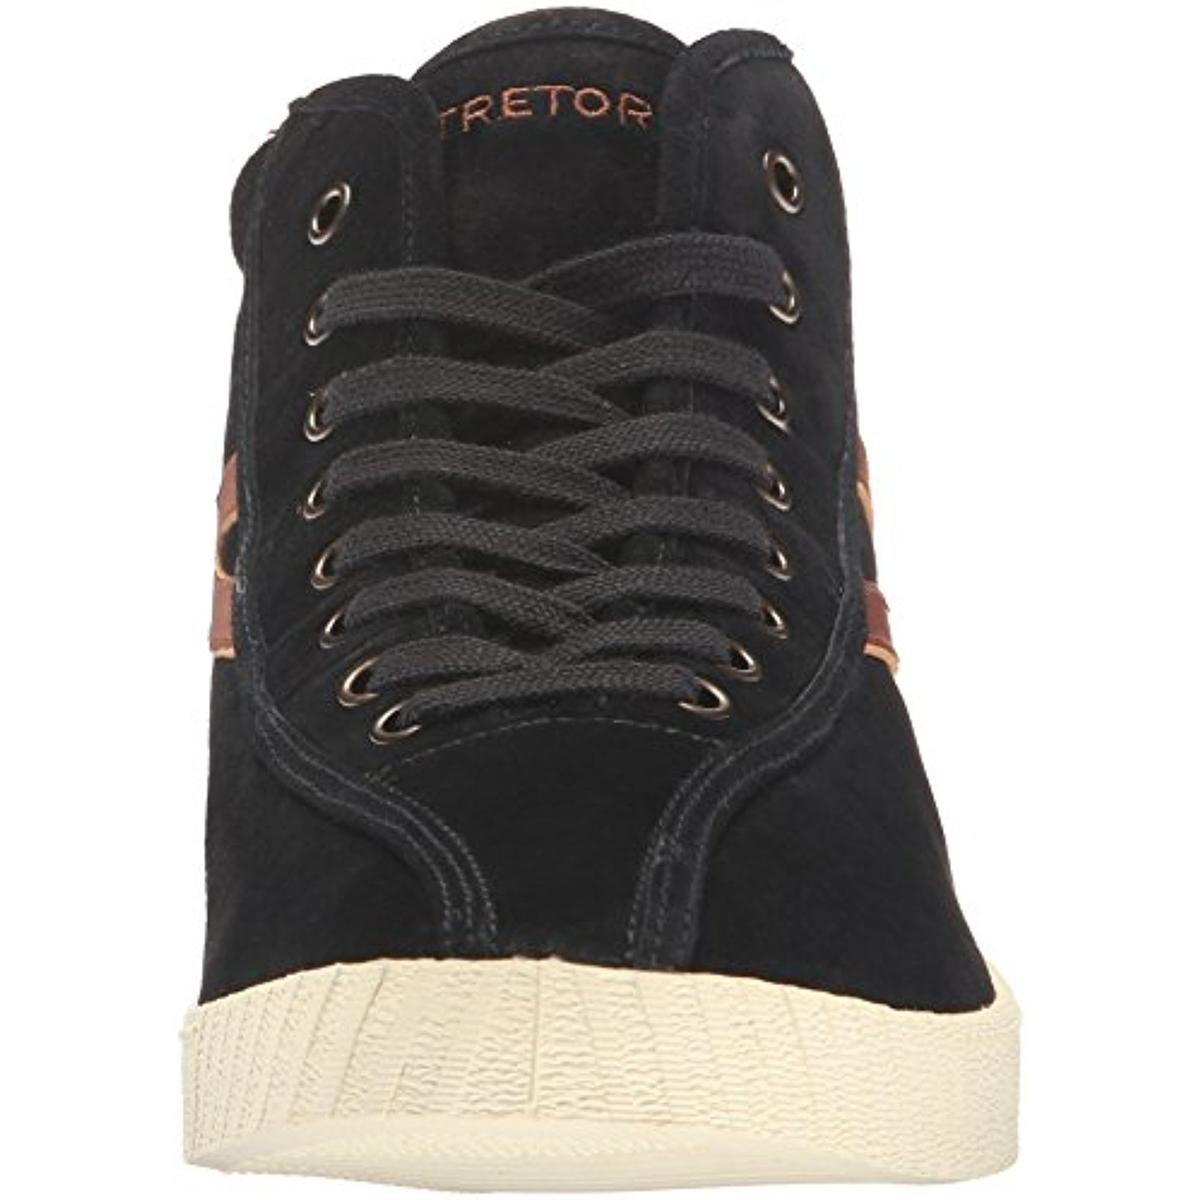 a2fbb7ef043f Shop Tretorn Mens Nylite Hi7 Fashion Sneakers Suede Hi Top - Free Shipping  On Orders Over  45 - Overstock - 14528846